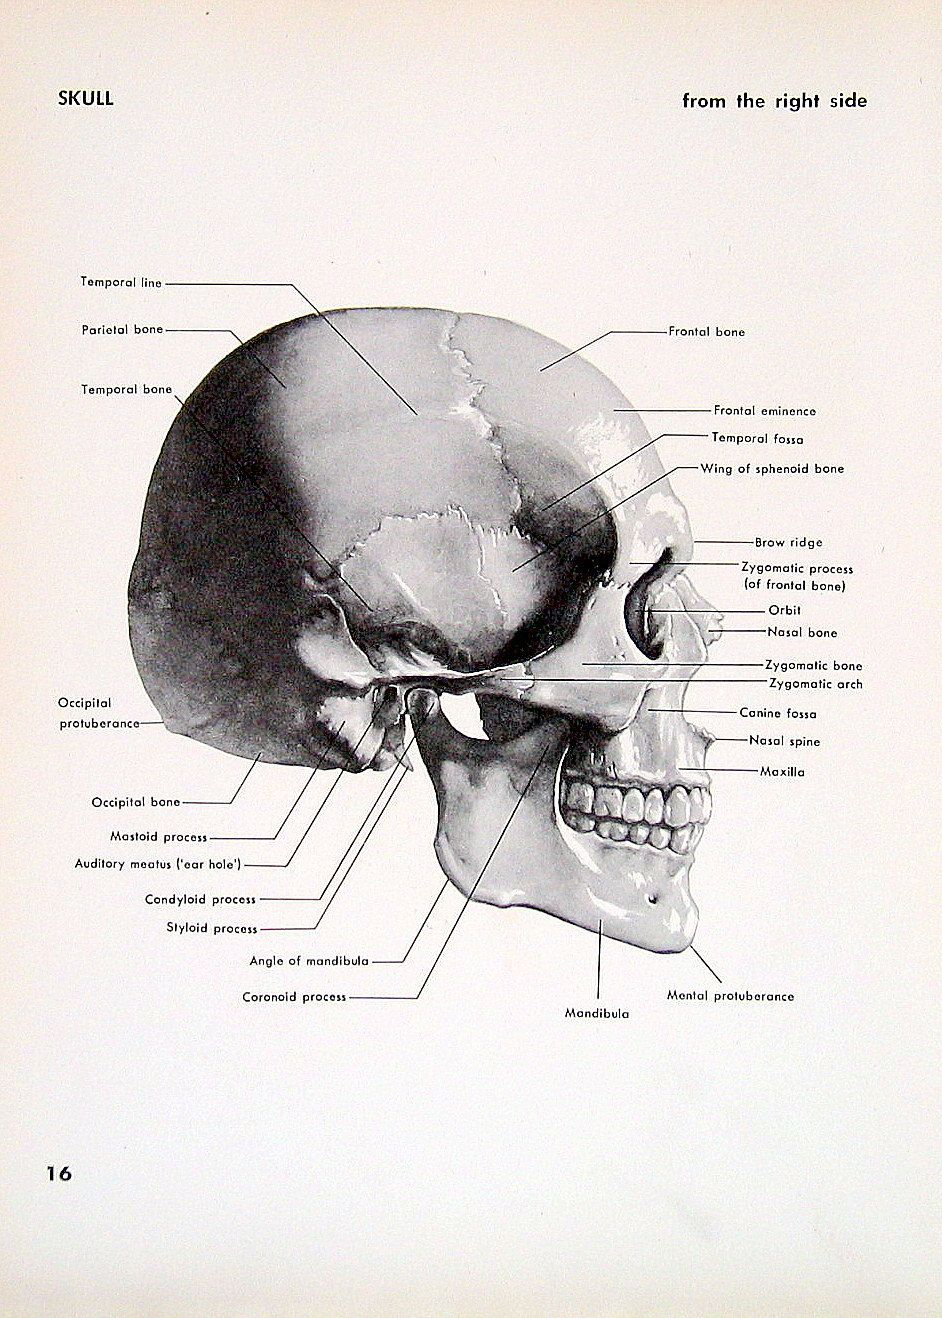 1951 2 Sided Vintage Anatomy Book Plate Skull Right Side and Back ...